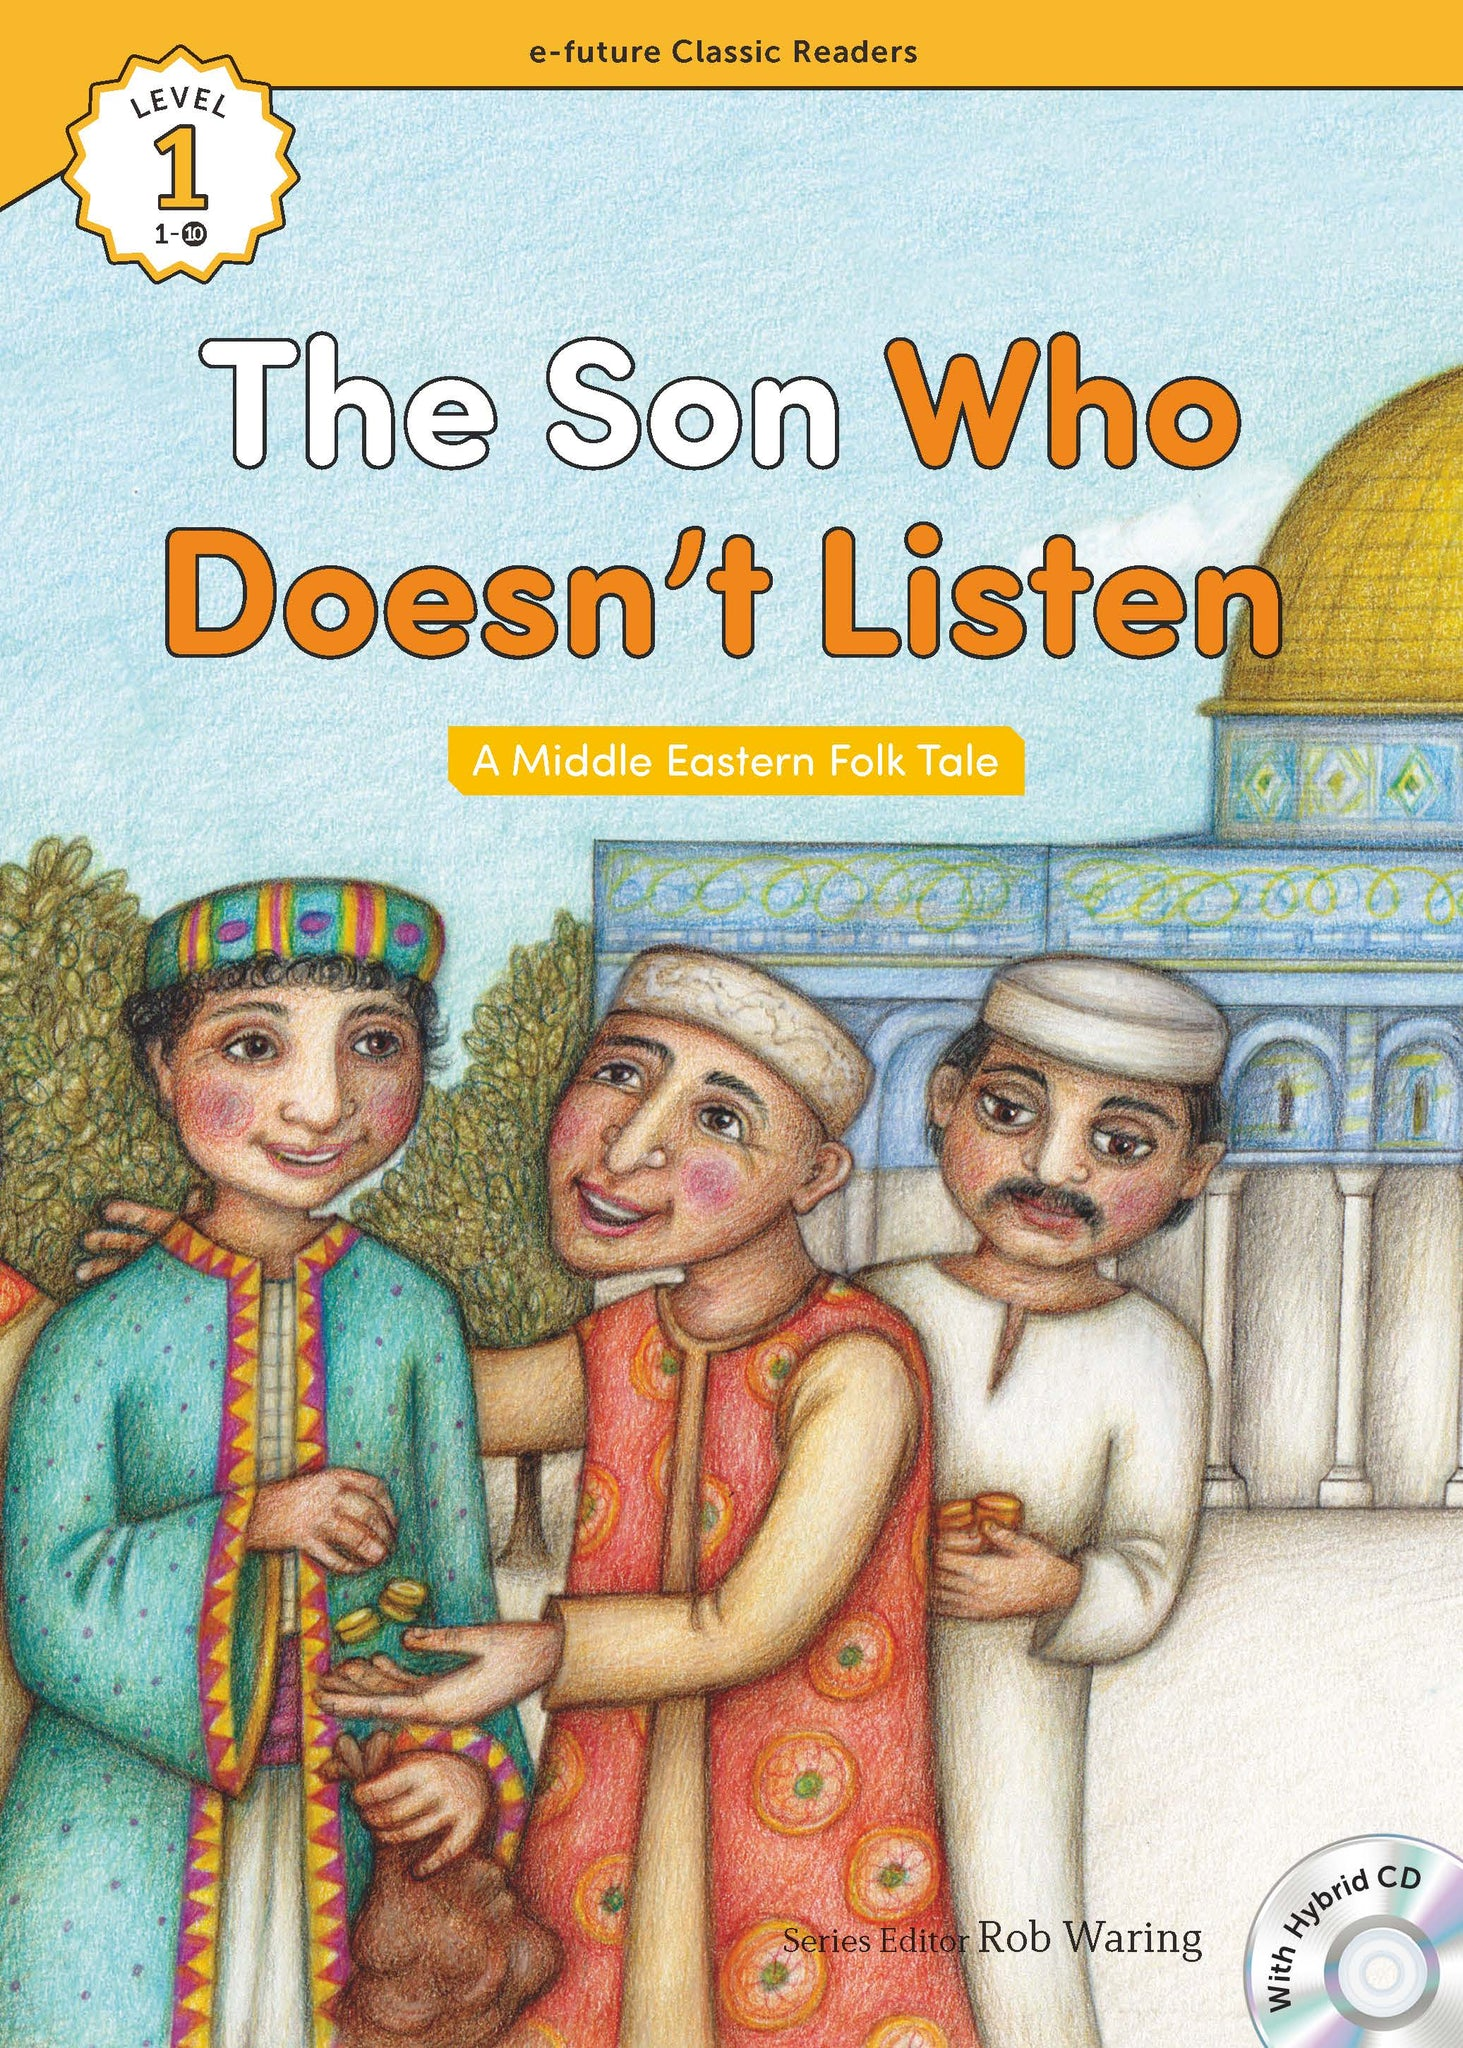 EF Classic Readers Level 1, Book 10: The Son Who Doesn't Listen